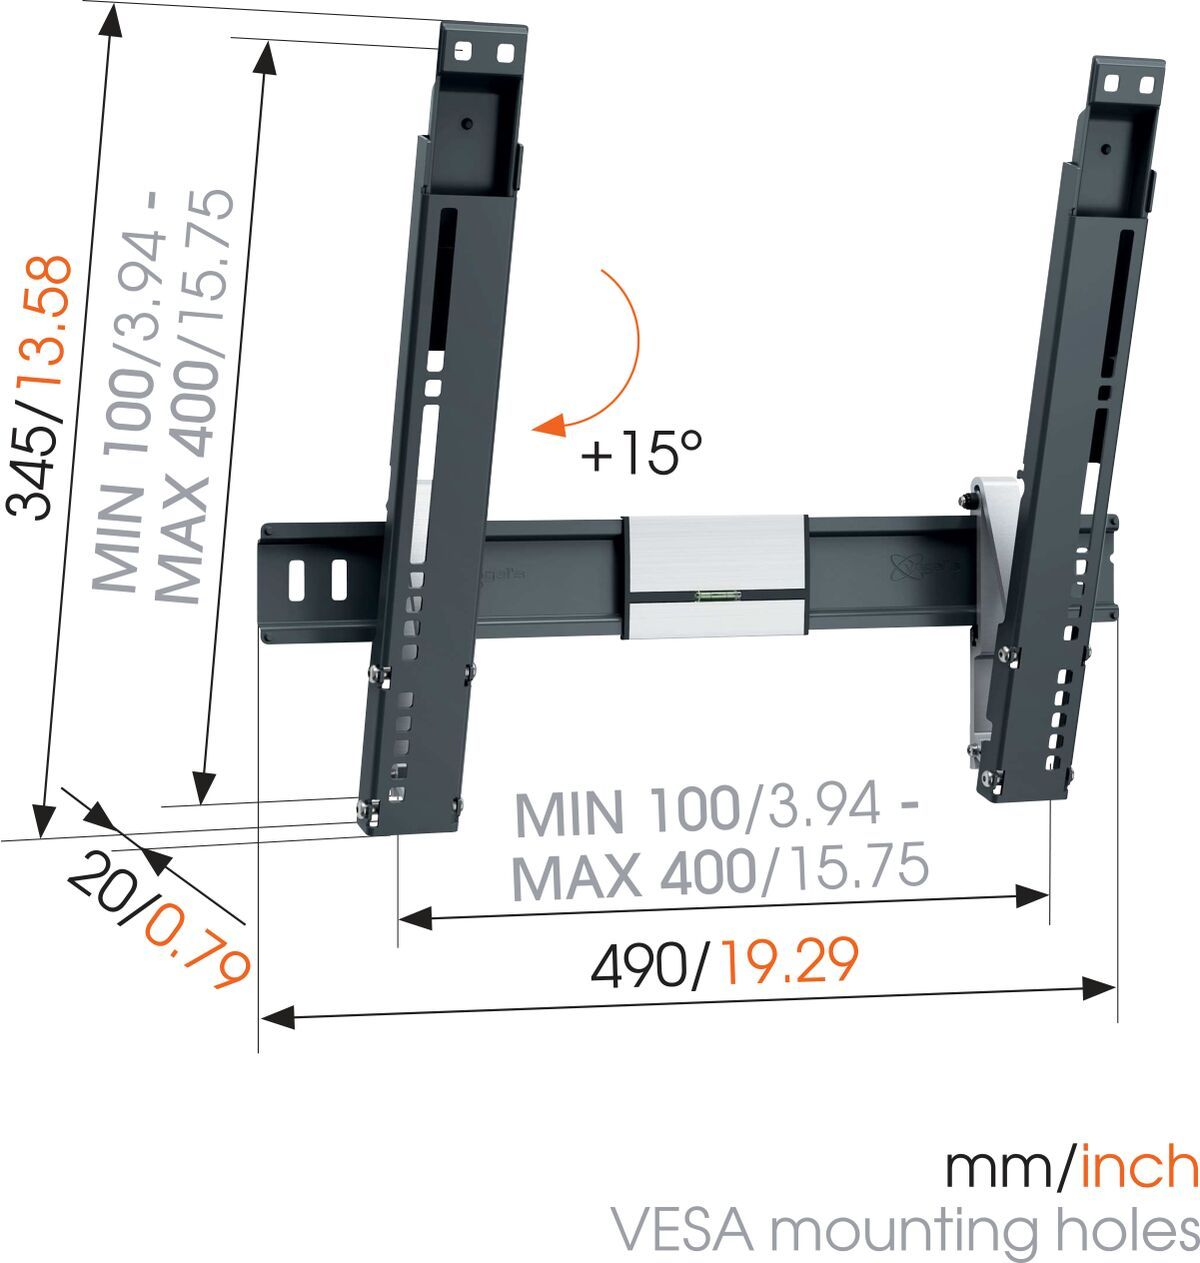 Vogel's THIN 415 ExtraThin Tilting TV Wall Mount - Suitable for 18 - Suitable for Tilt up to 15° - Suitable for Dimensions